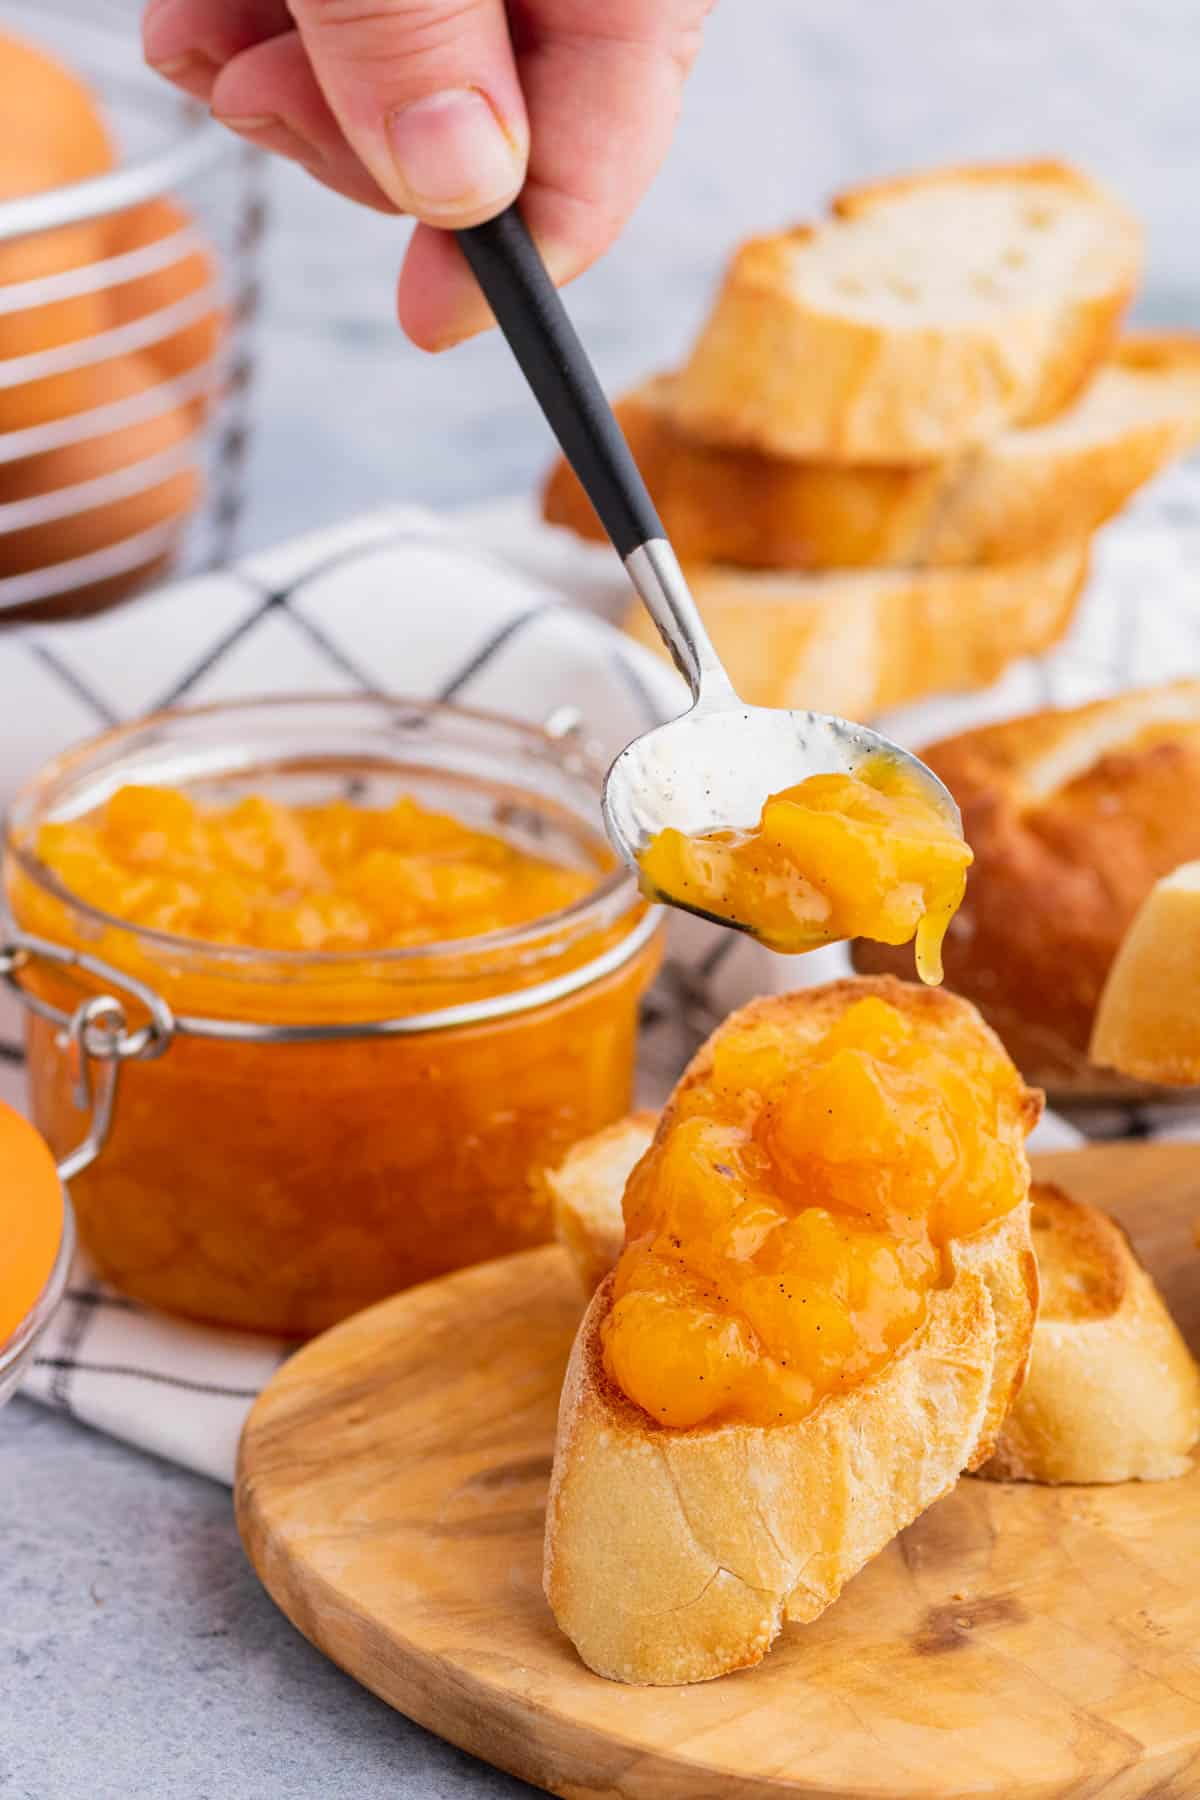 A hand holds a spoon full of Peach Freezer Jam over a slice of toast.